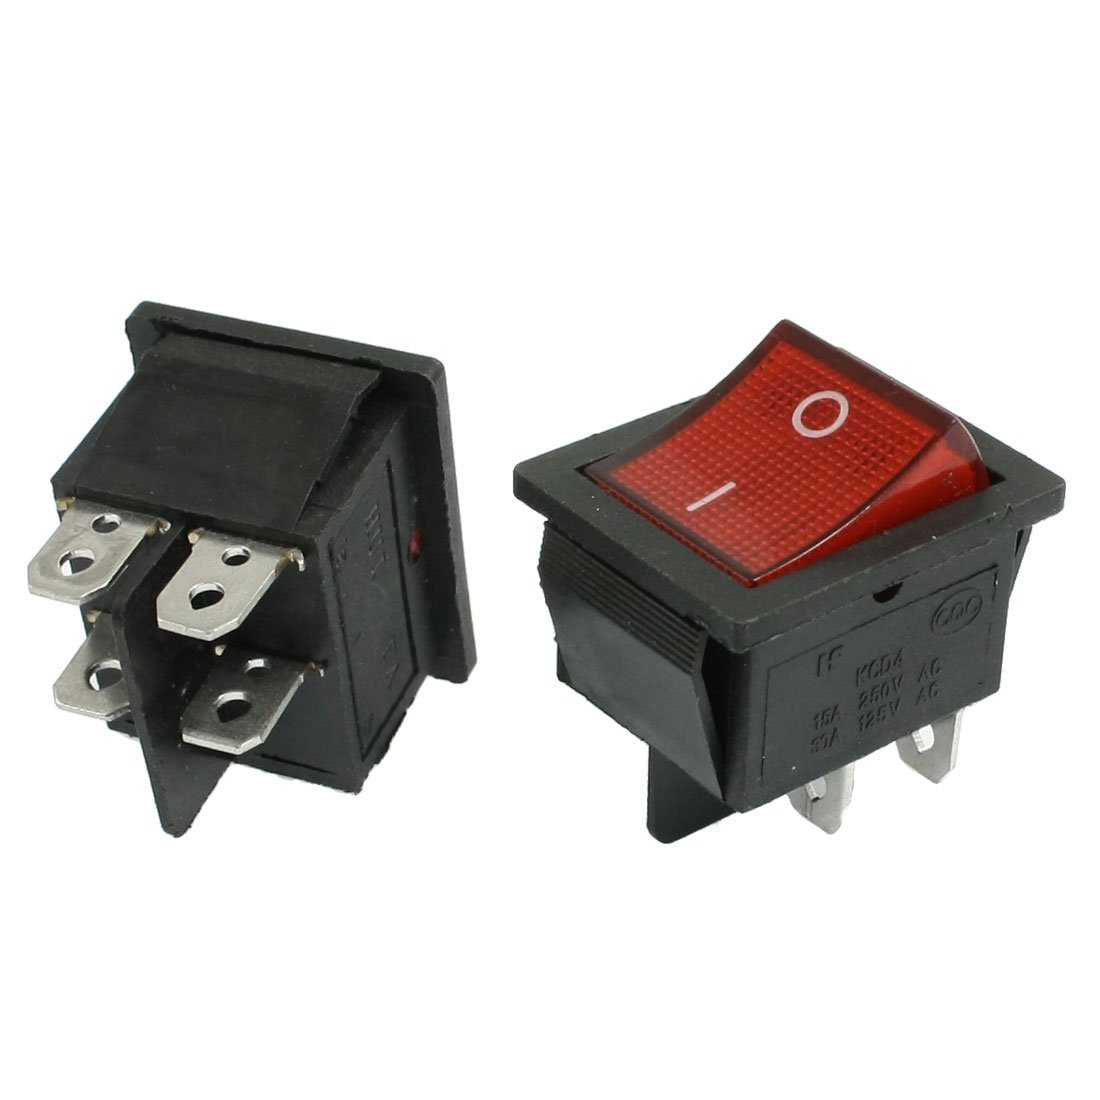 Discount Rocker Switches For Cars Rocker Switches For Cars 2020 On Sale At Dhgate Com